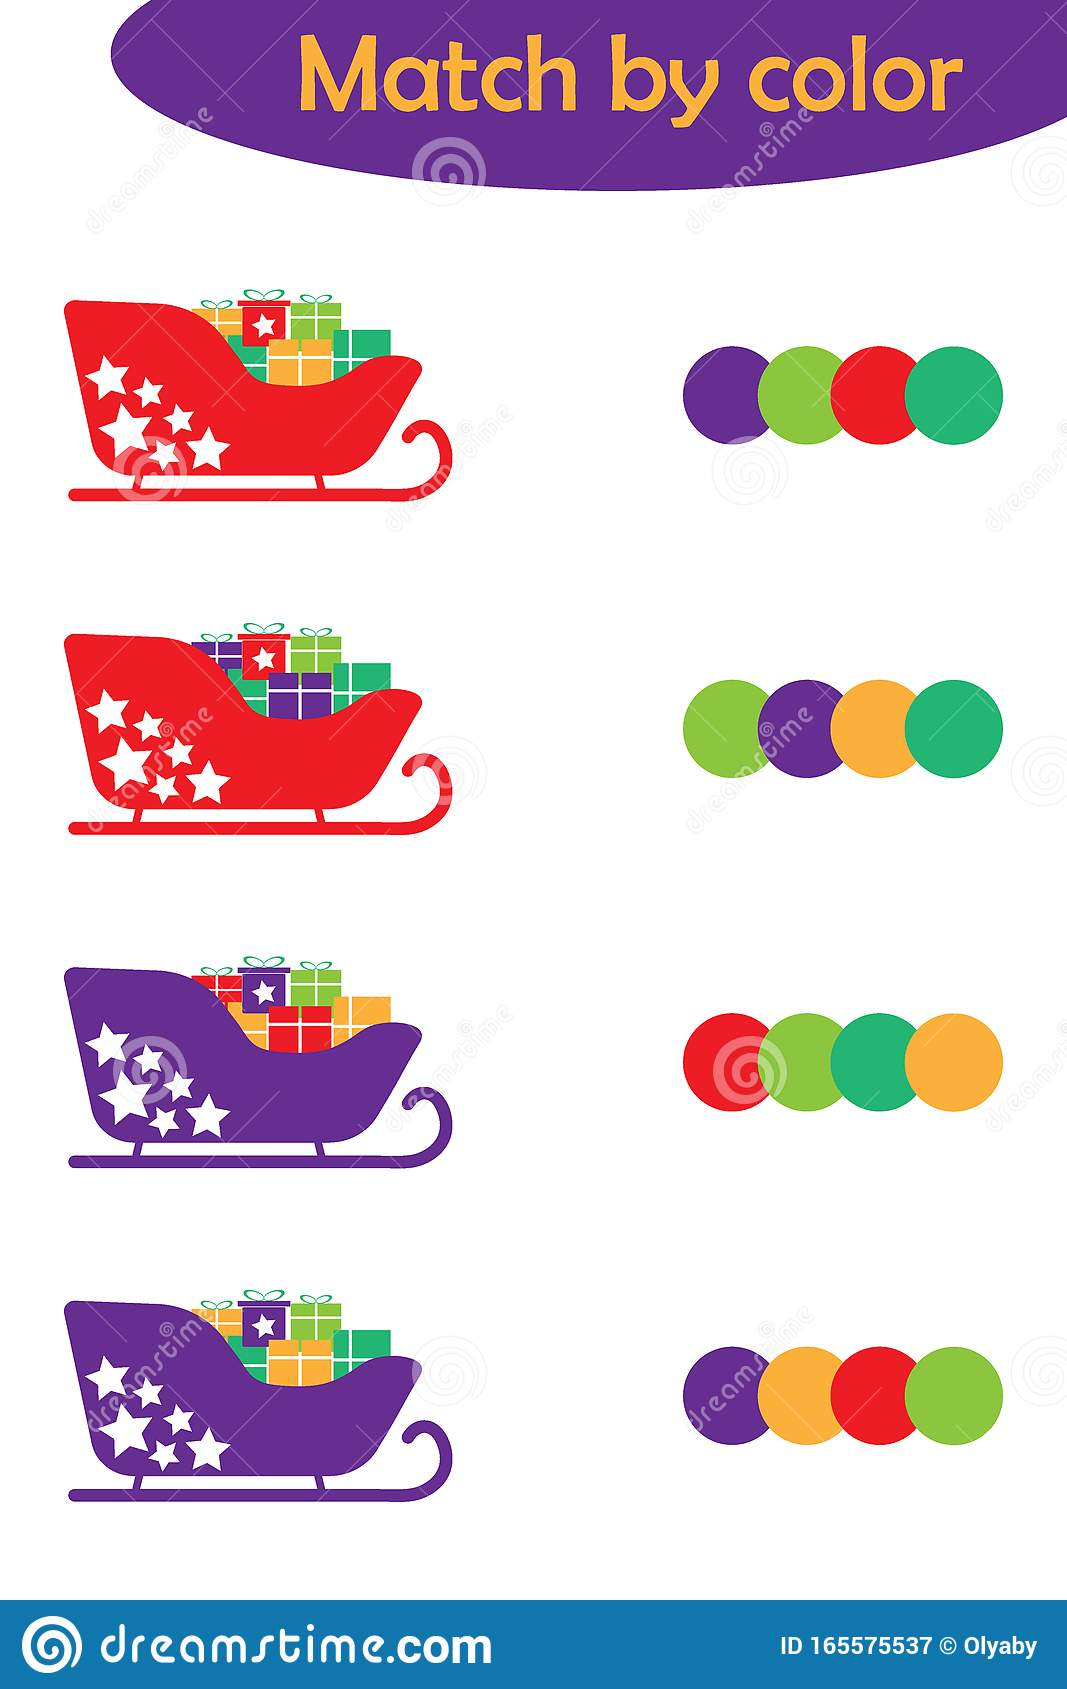 Winter Xmas Matching Game For Children Connect Sleighs